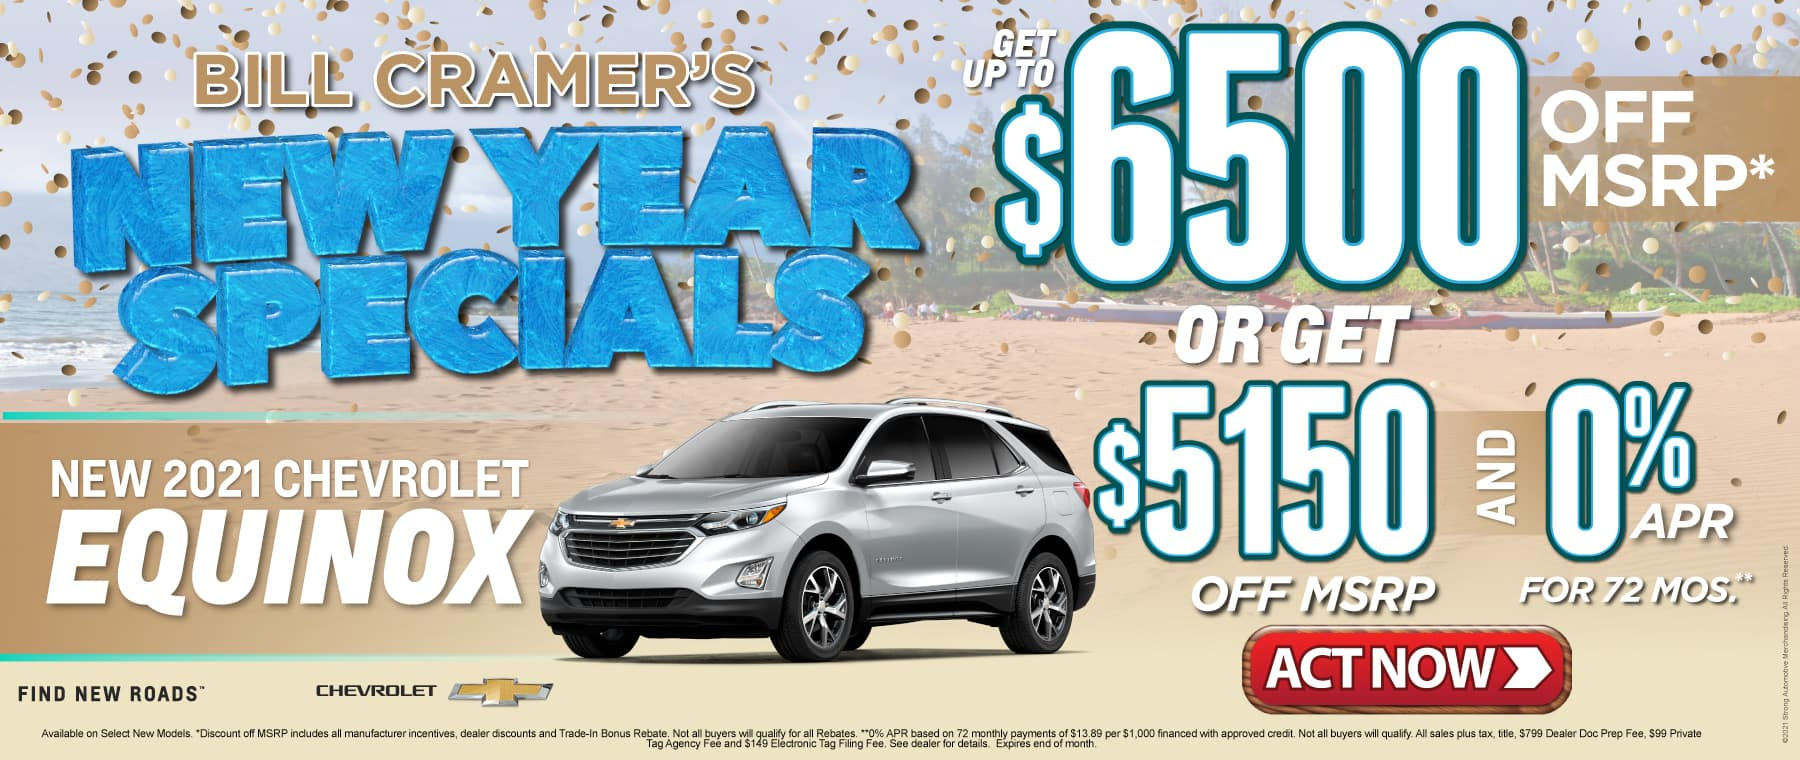 New 2021 Chevrolet Equinox - Get up to $6500 off msrp - Act Now